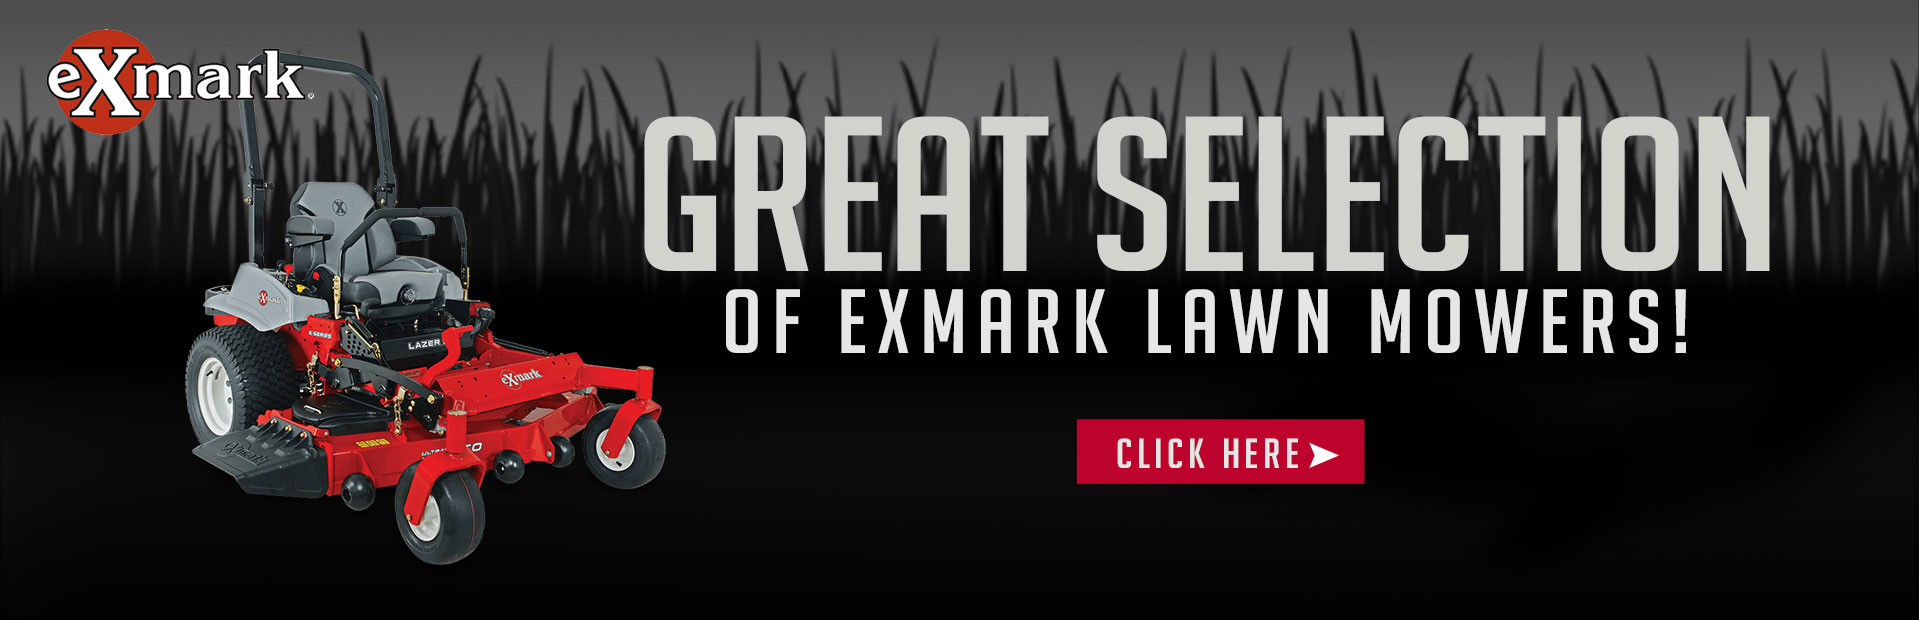 We have a great selection of Exmark lawn mowers. Click here to view them.